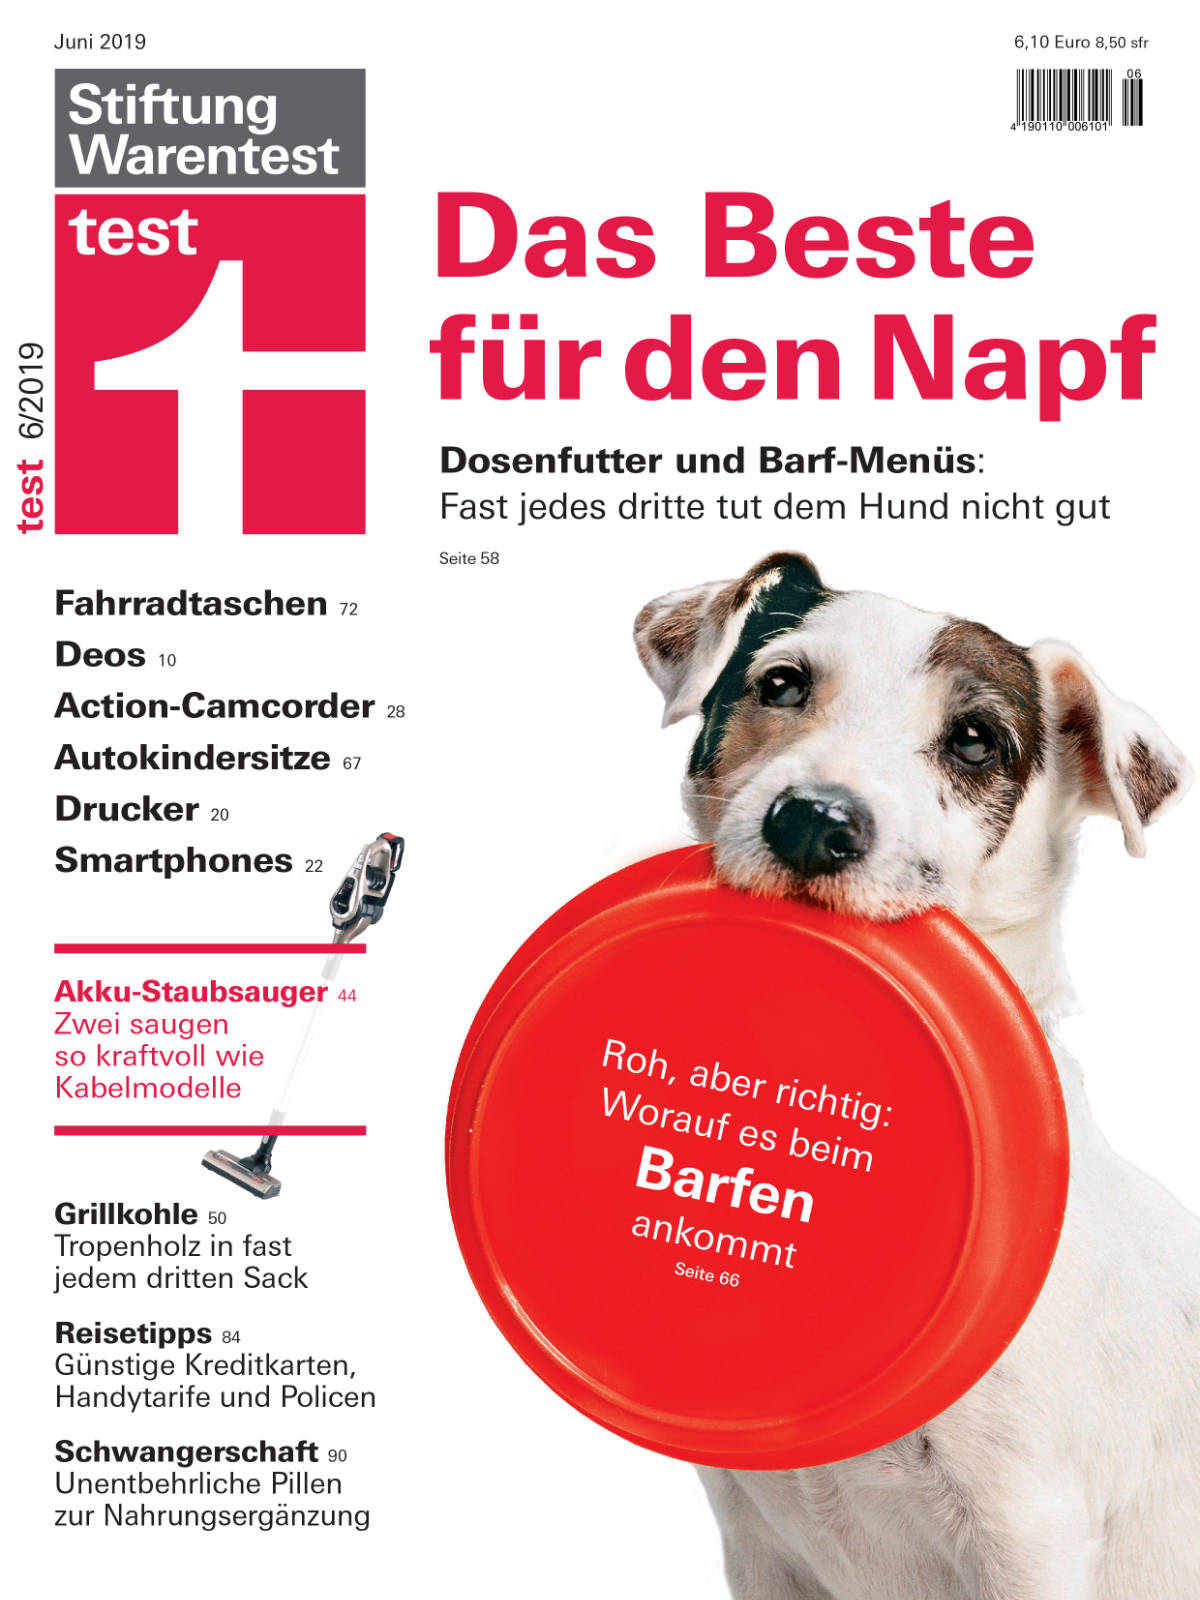 Titelcover Stiftung Warentest